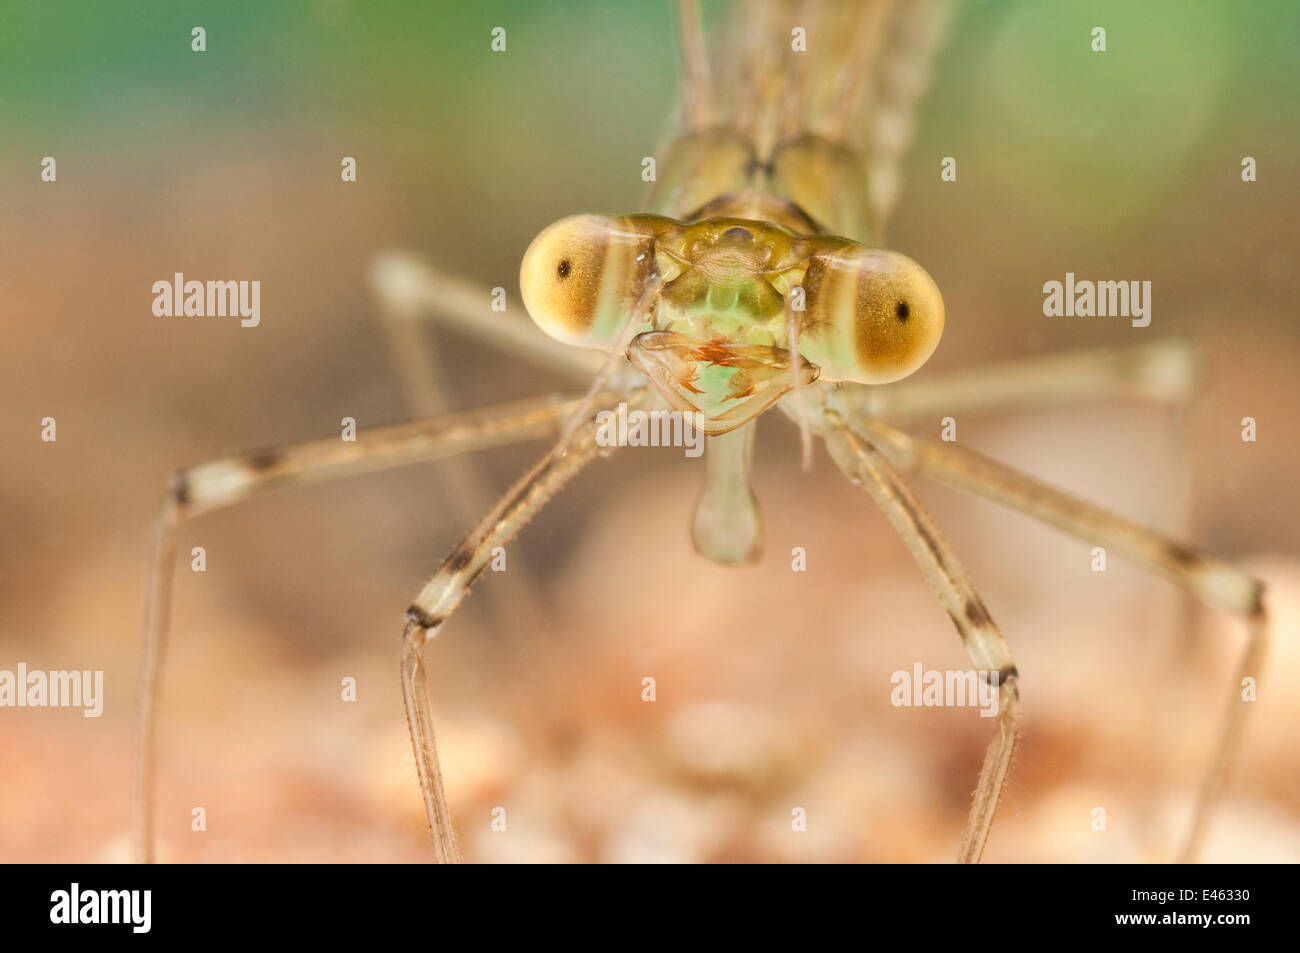 Spread-winged Damselfly (Lestidae) nymph portrait. Europe, July. - Stock Image